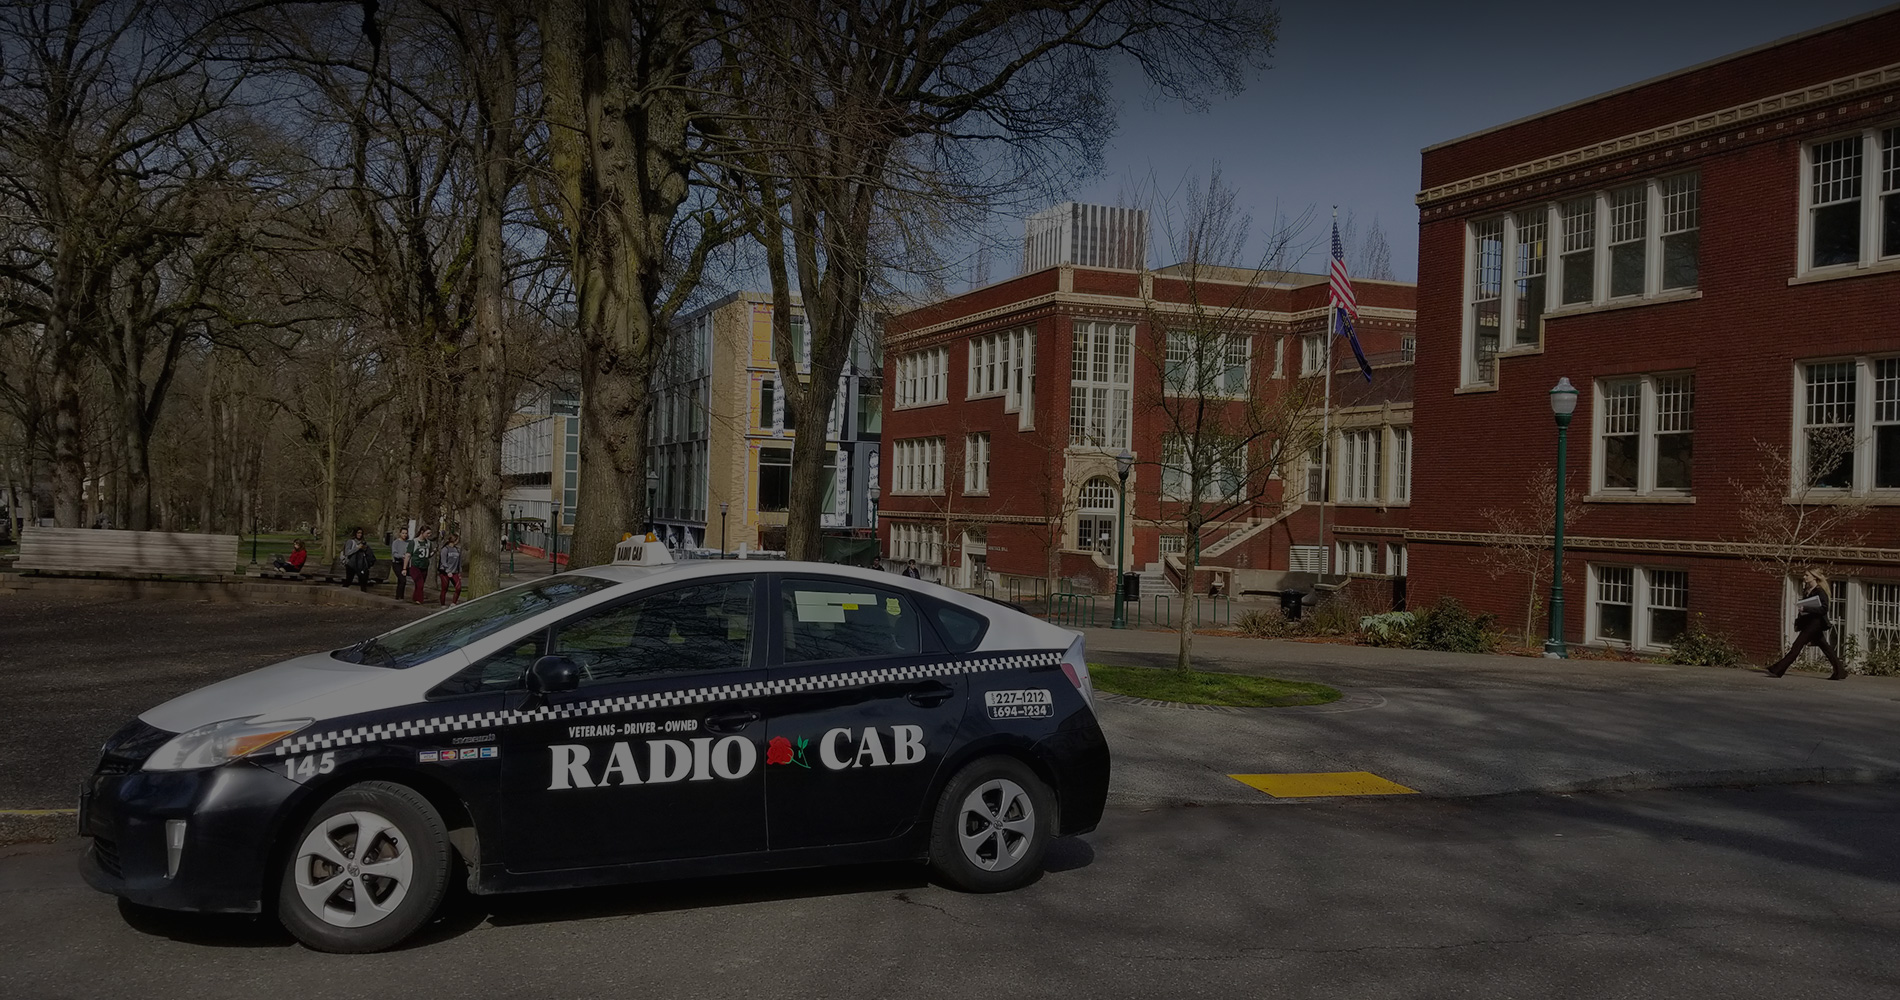 Portland Taxi Services Cabs to Airport Radio Cab Near Me